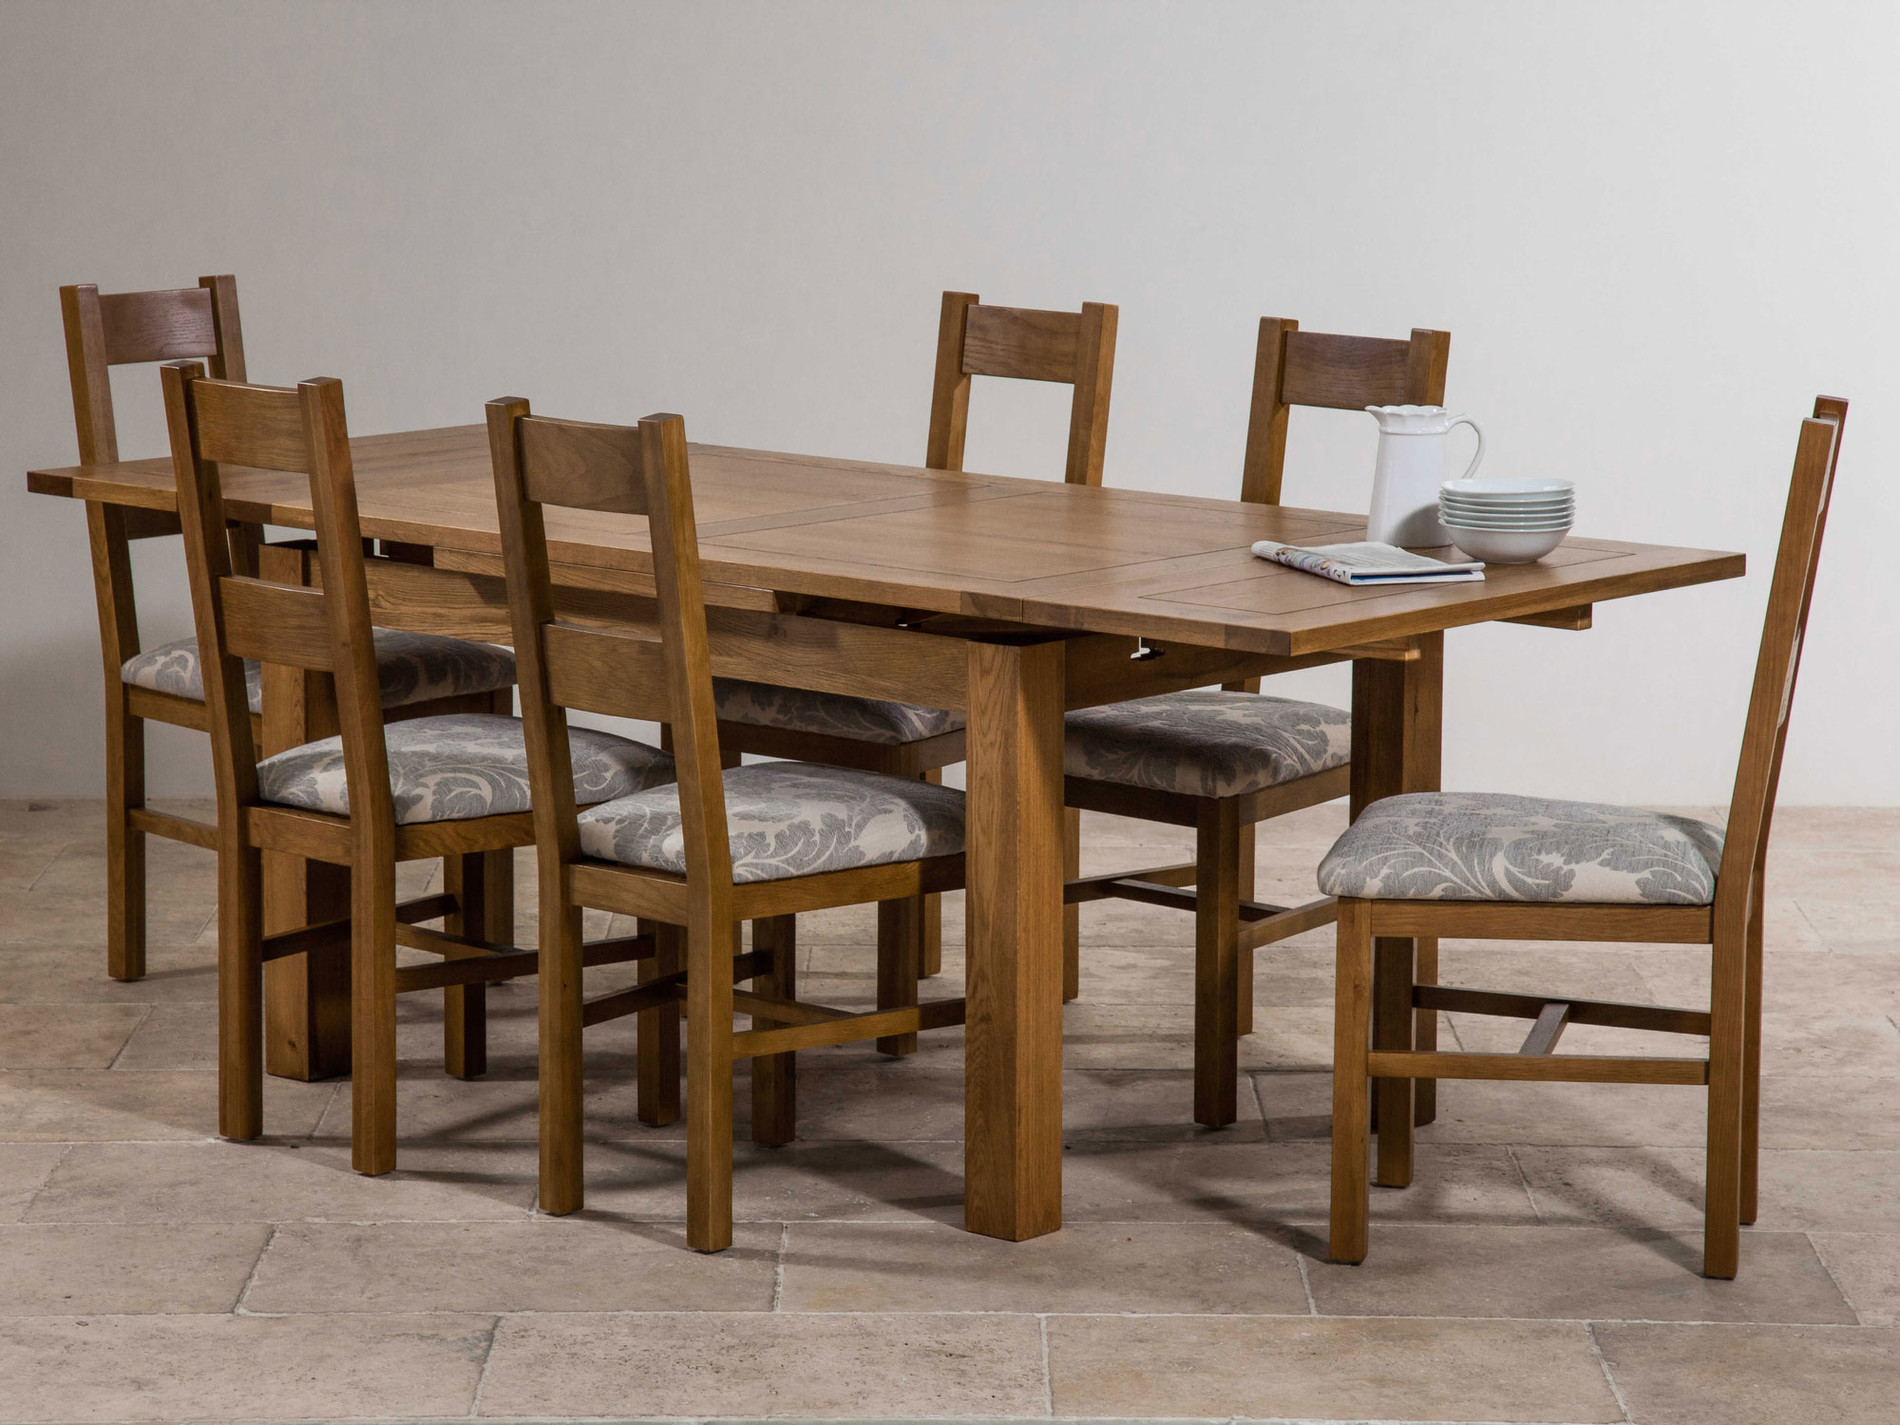 Rustic solid oak dining set 4ft extending dining table for Rustic dining set